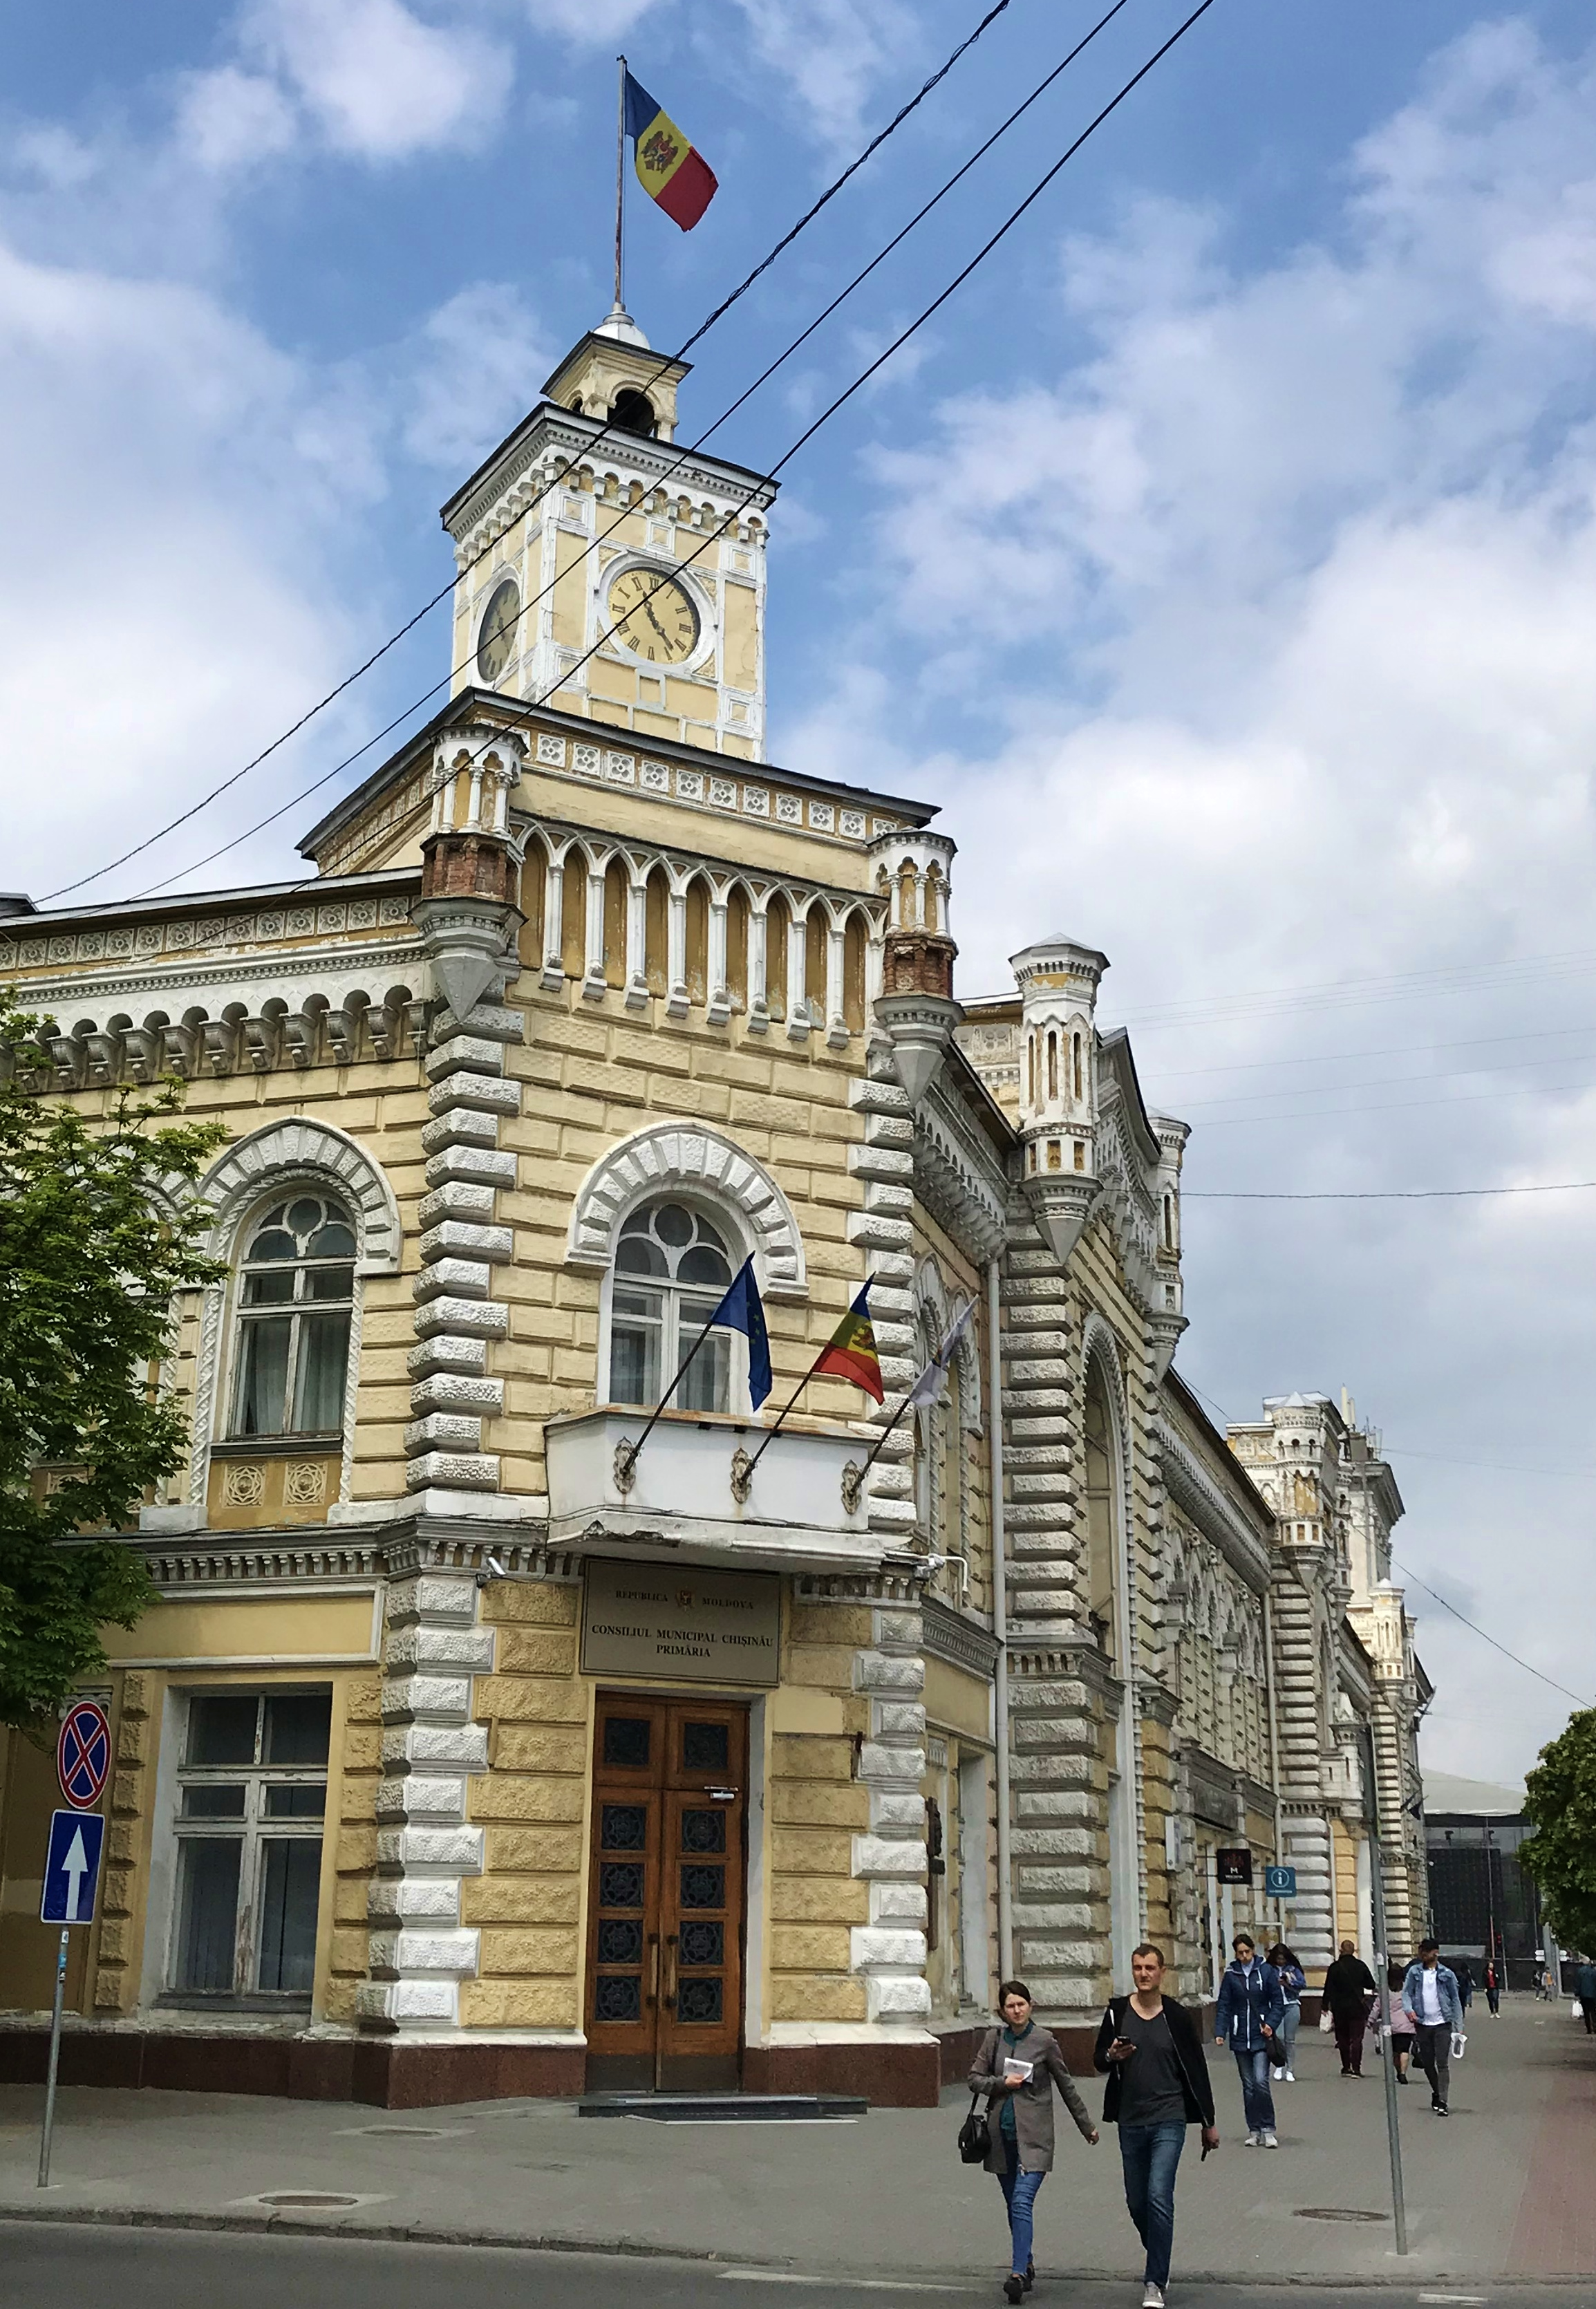 An example of old architecture in Chisinau, Moldova